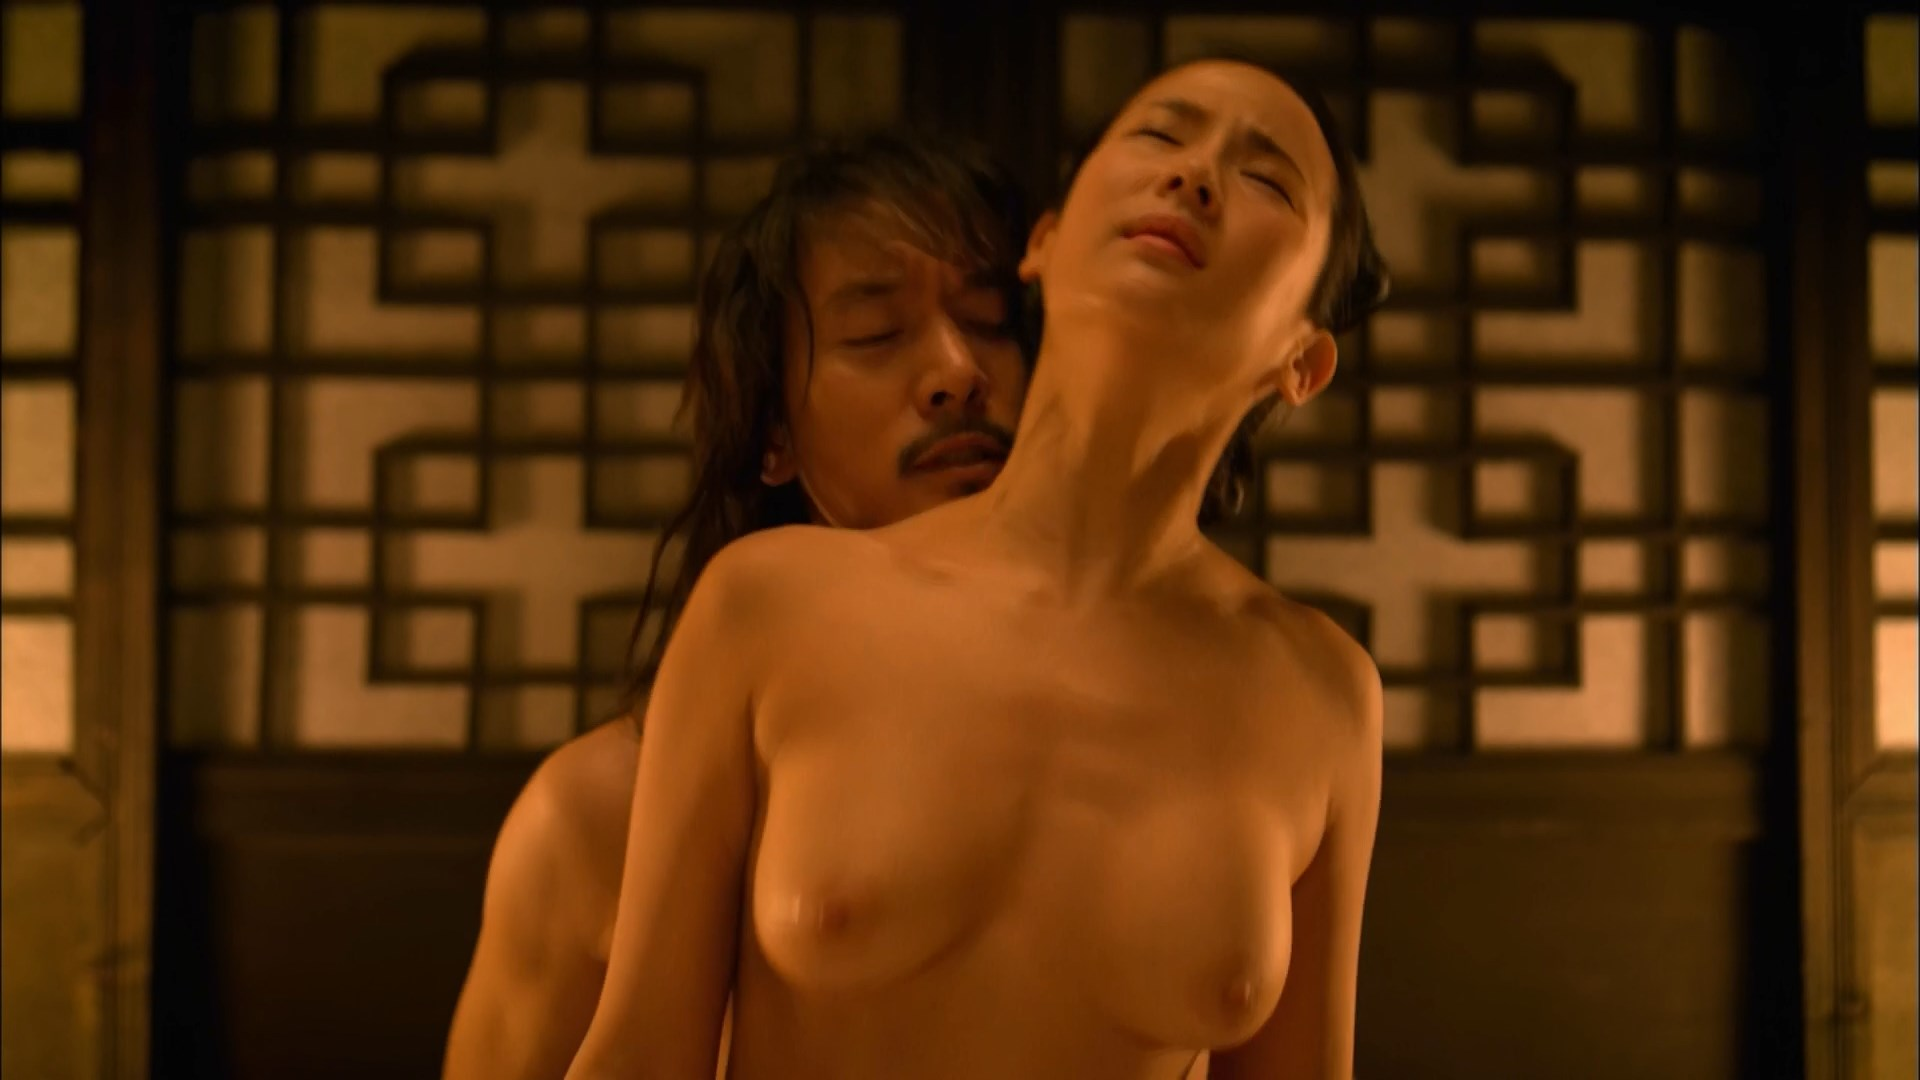 JO YEO-JEONG NUDE SEX SCENES FROM